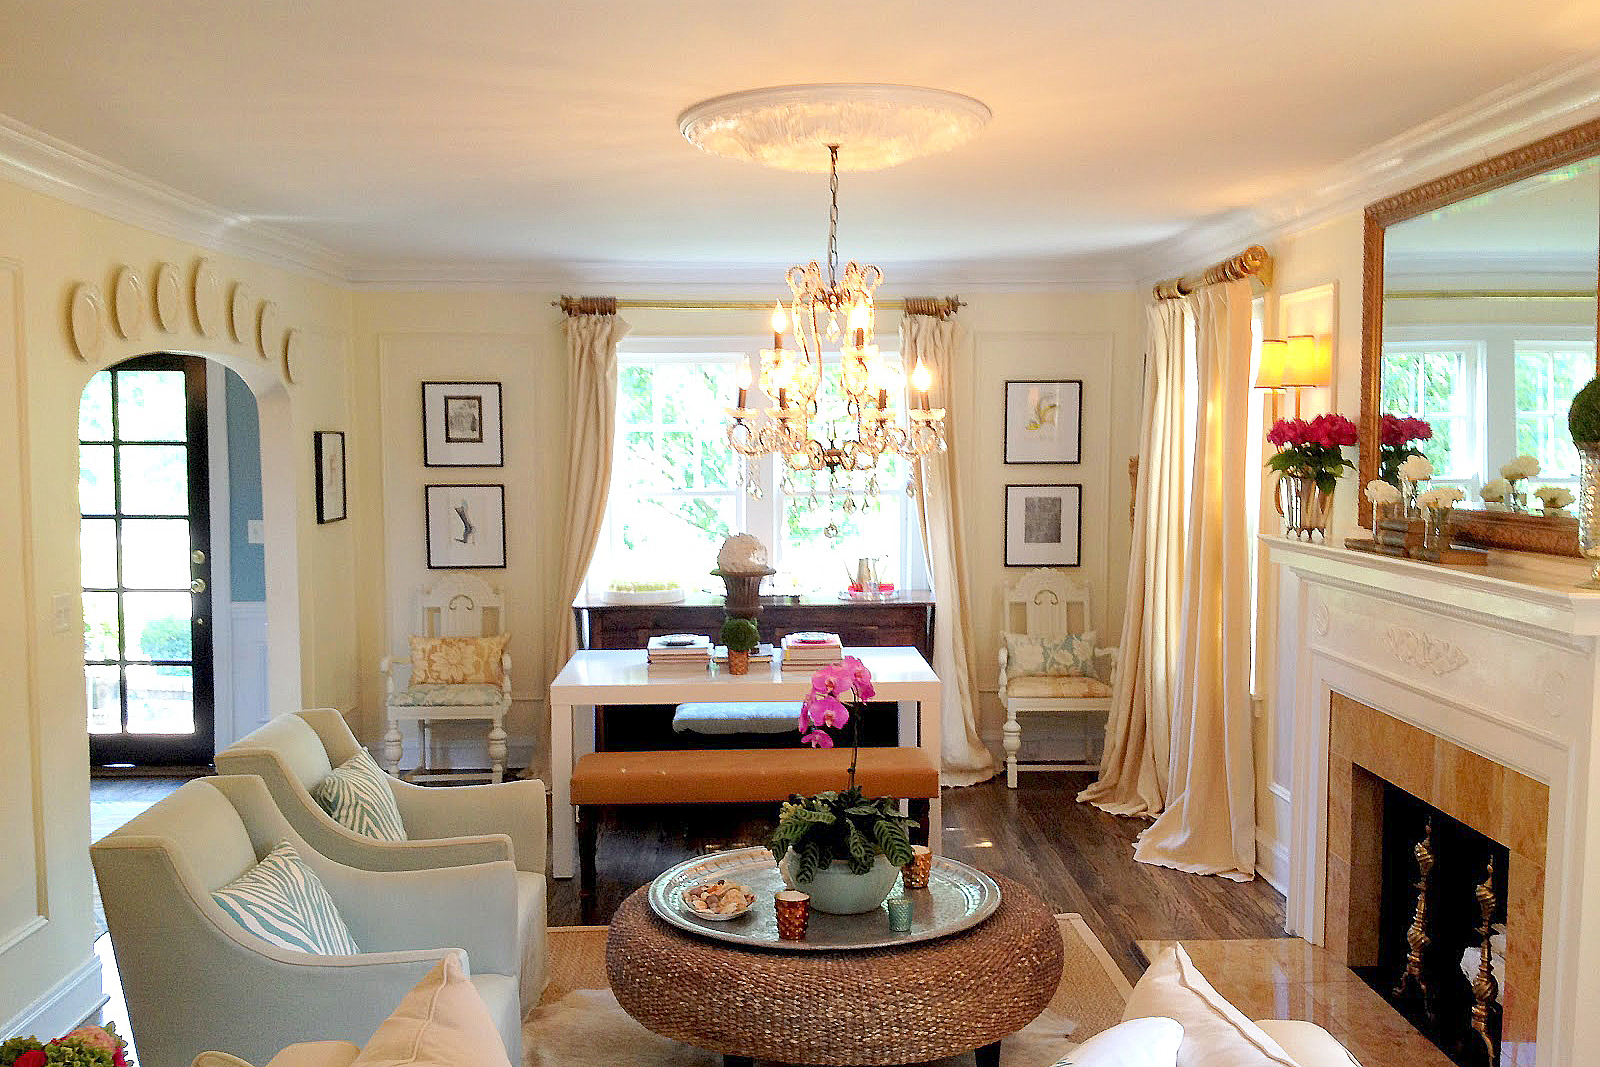 Cheap Remodeling Ideas That Add Elegance | Remodeling on a ... on Remodeling Ideas  id=59213